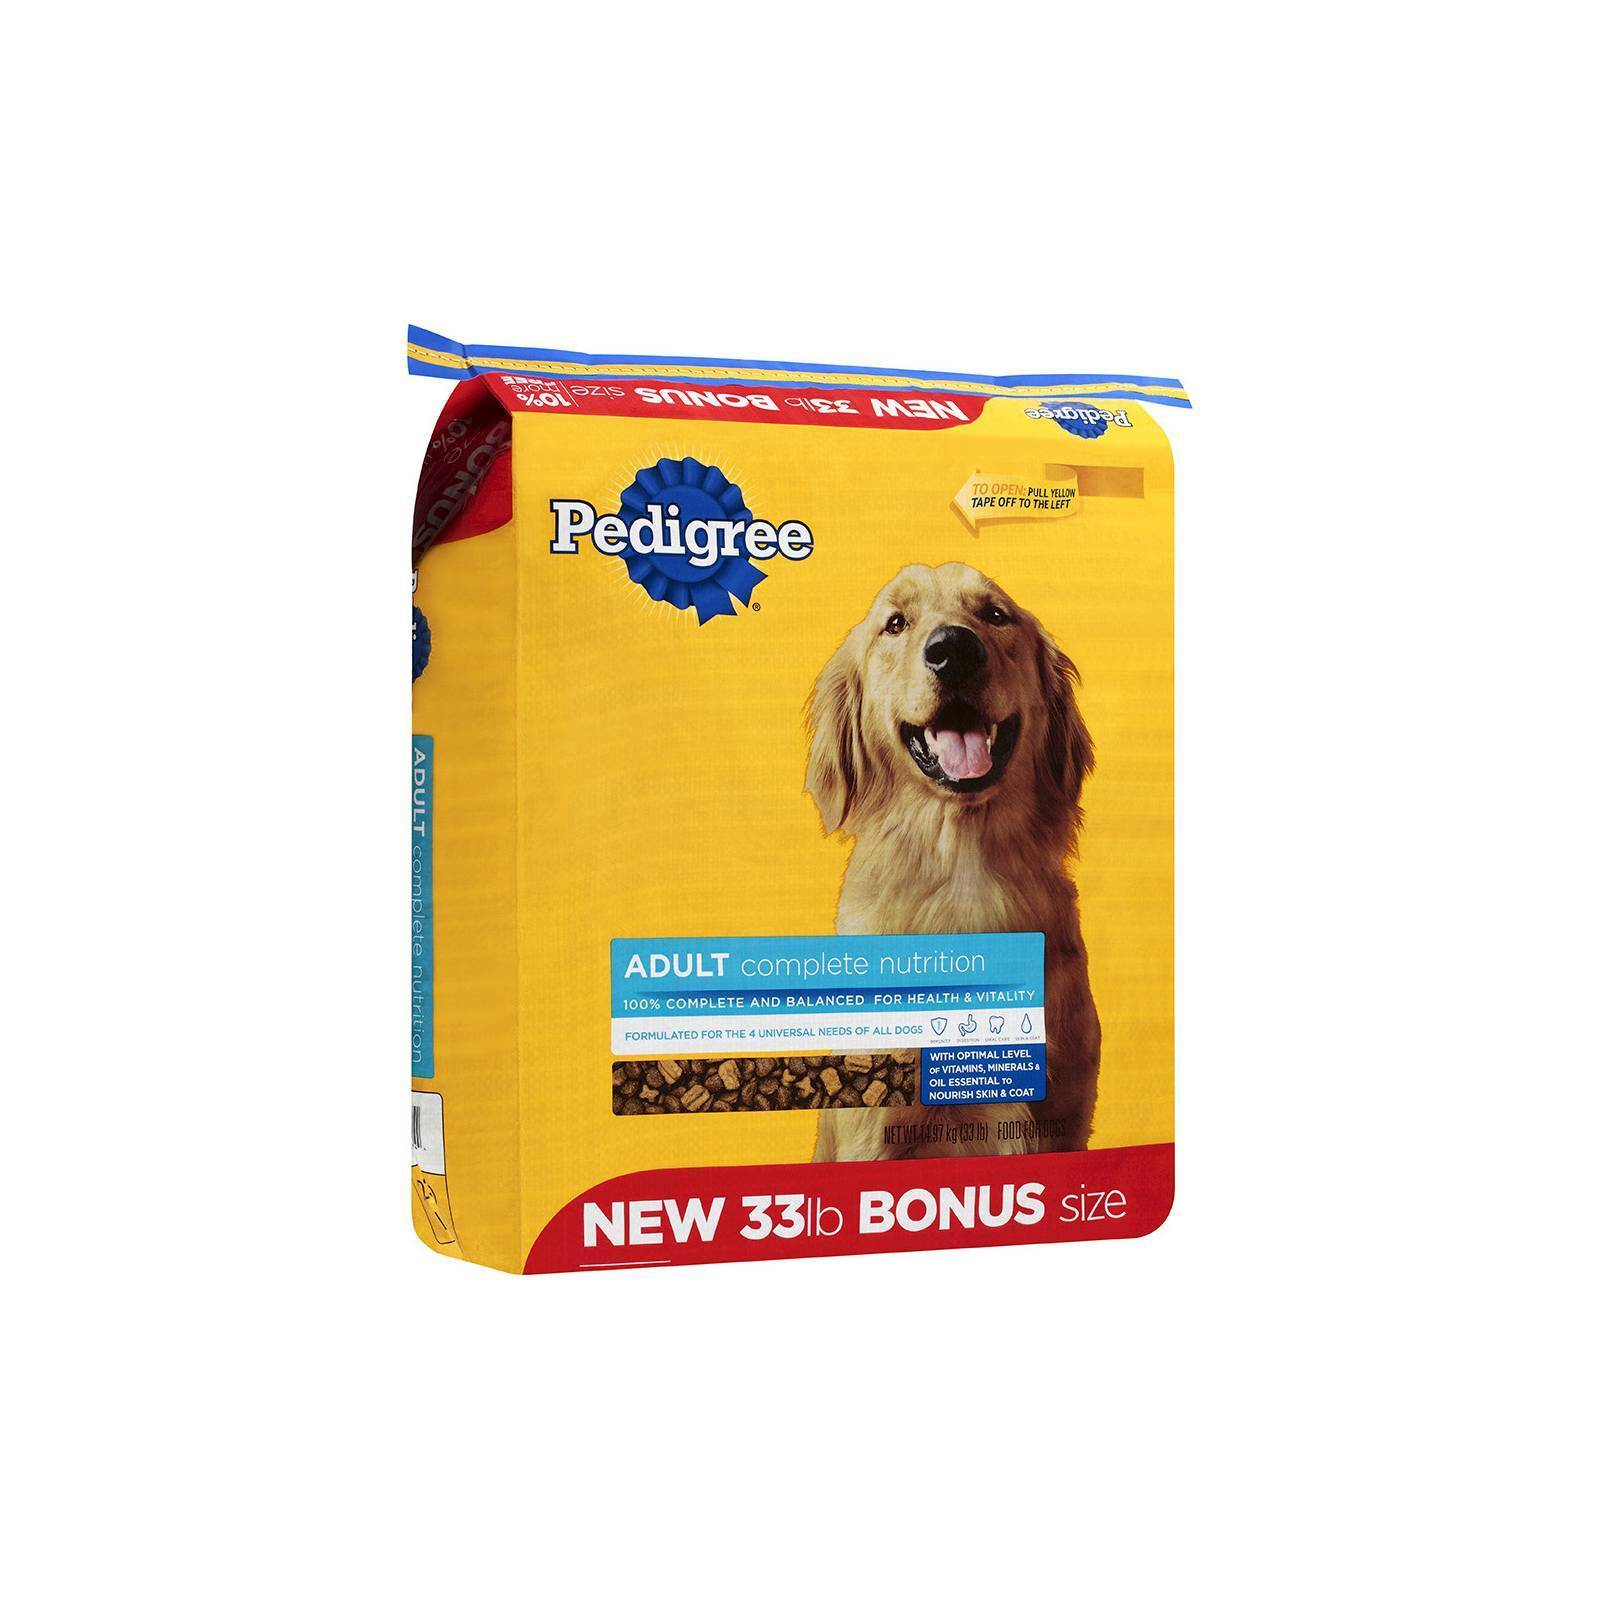 Pedigree Adult Complete Nutrition Dry Dog Food 33lb Bag Ebay